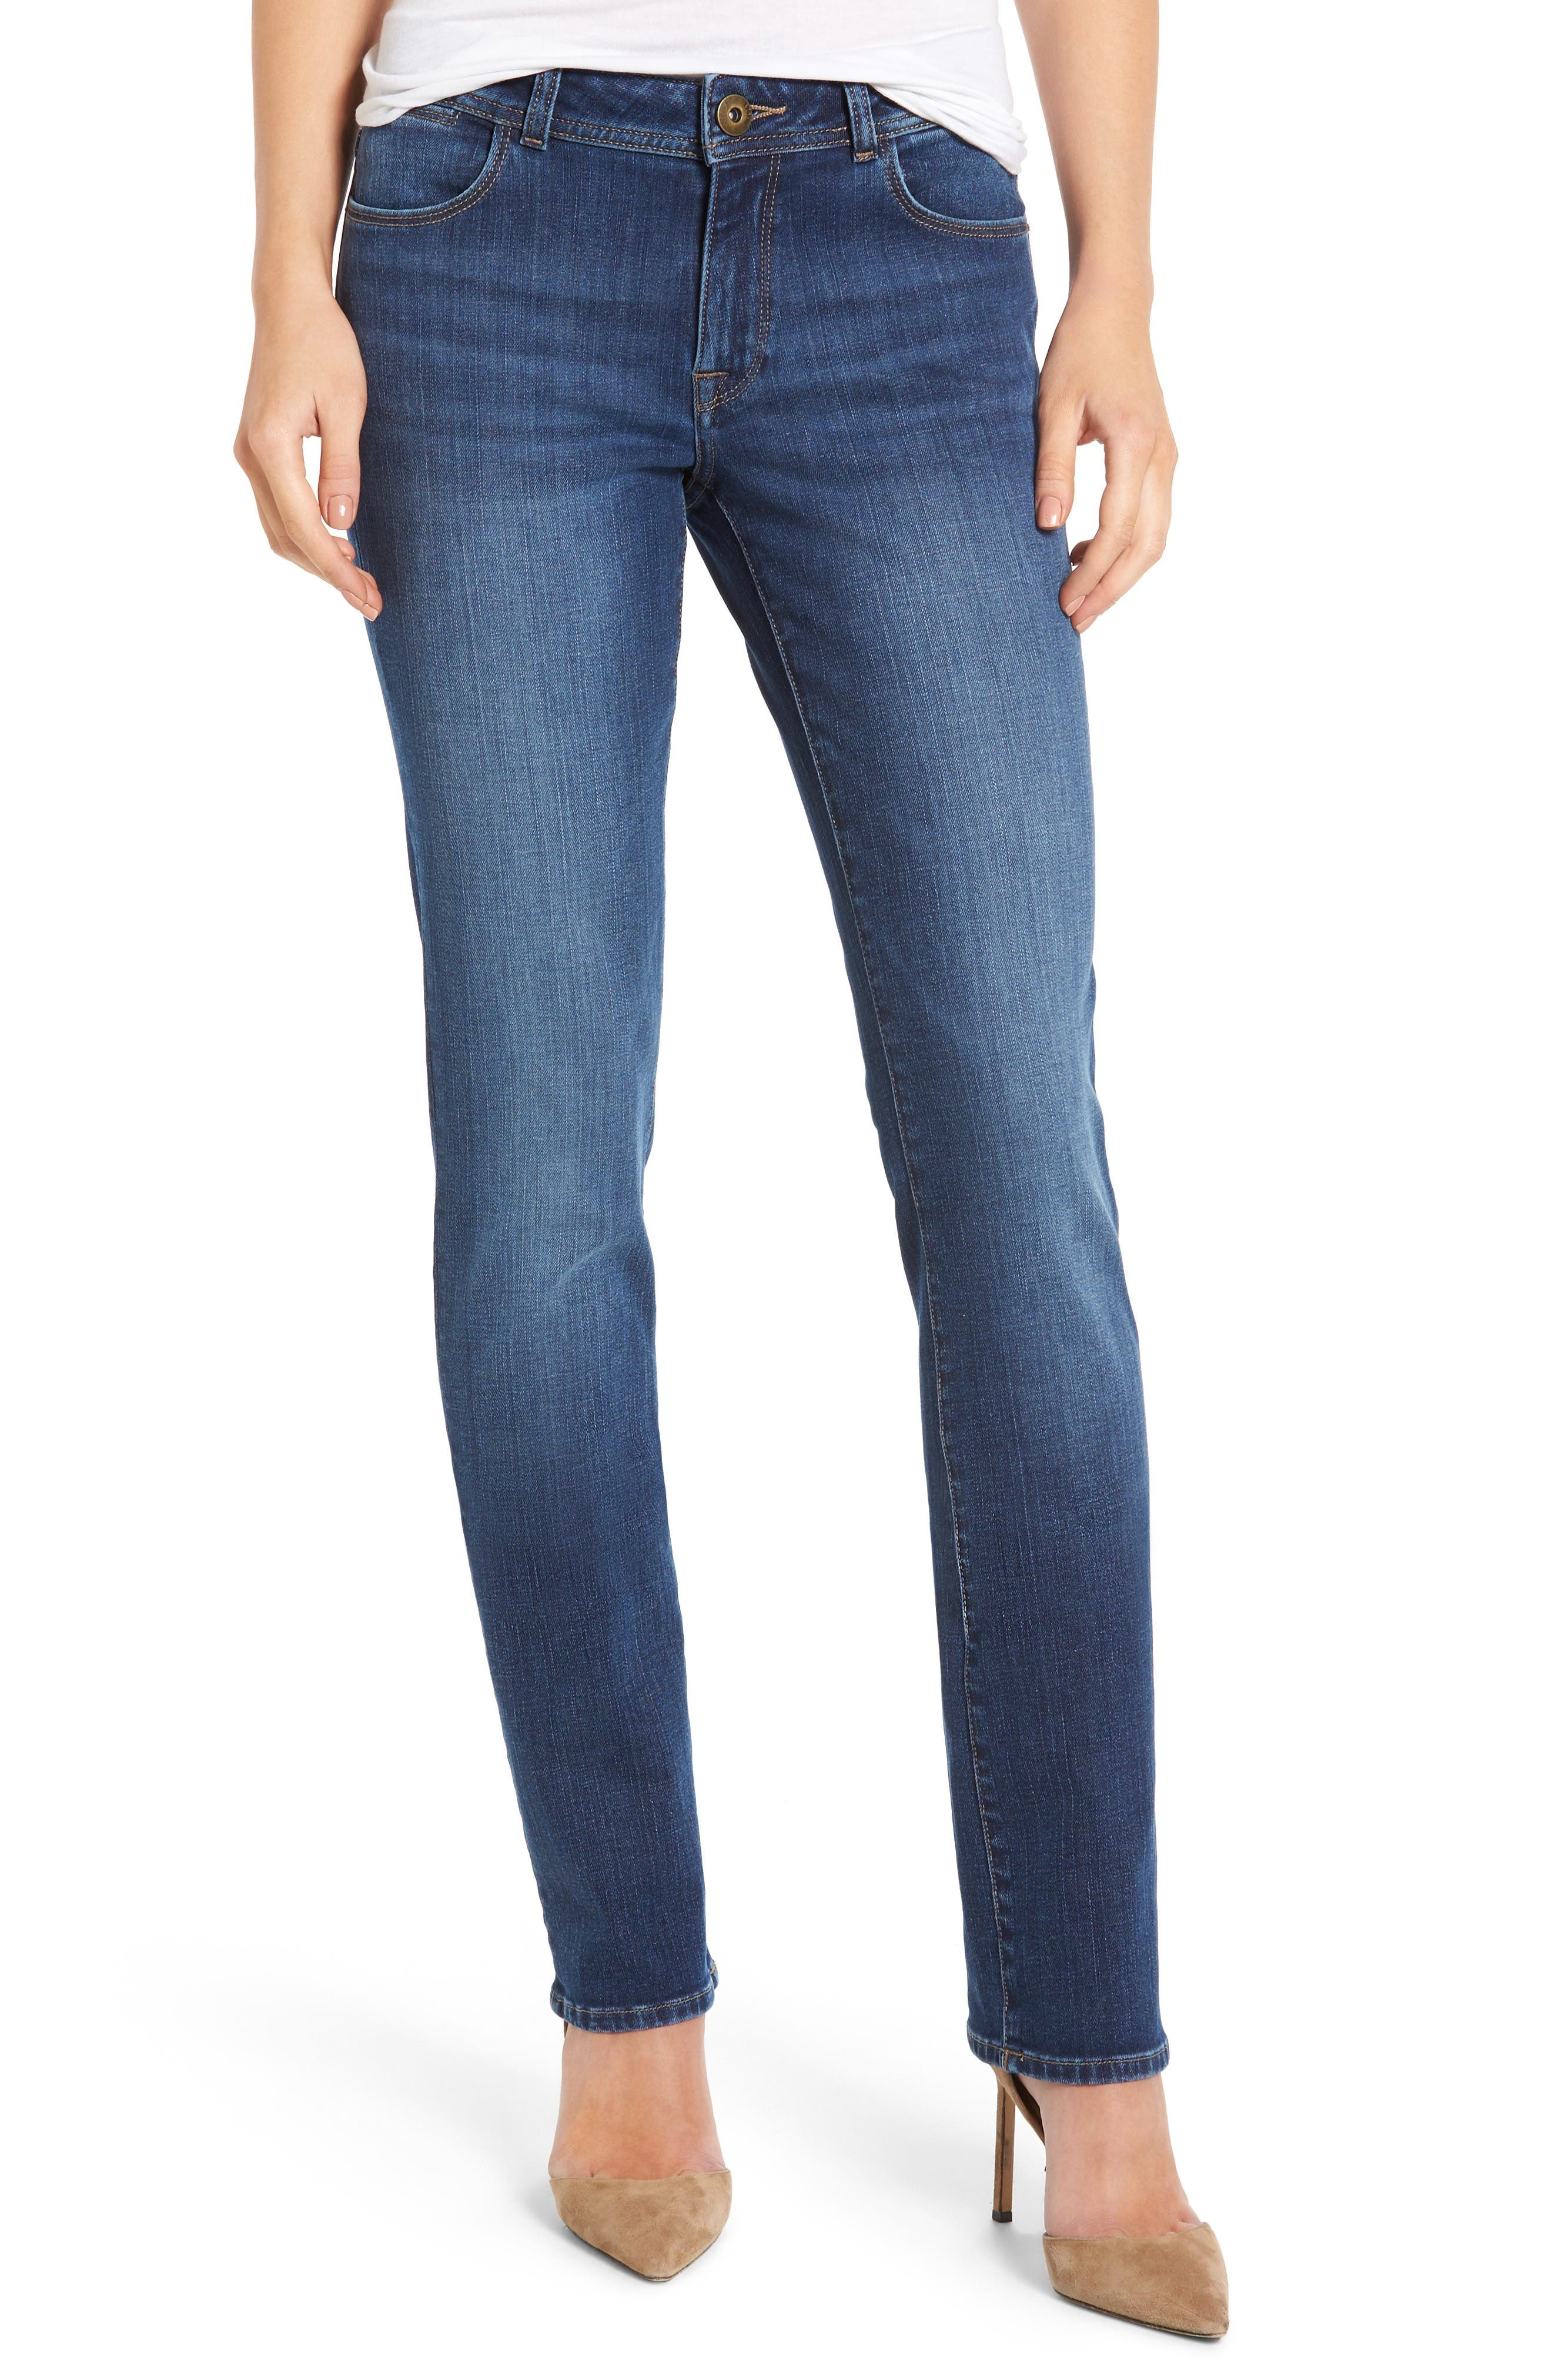 Main Image - DL1961 Coco Curvy Straight Leg Jeans (Pacific)